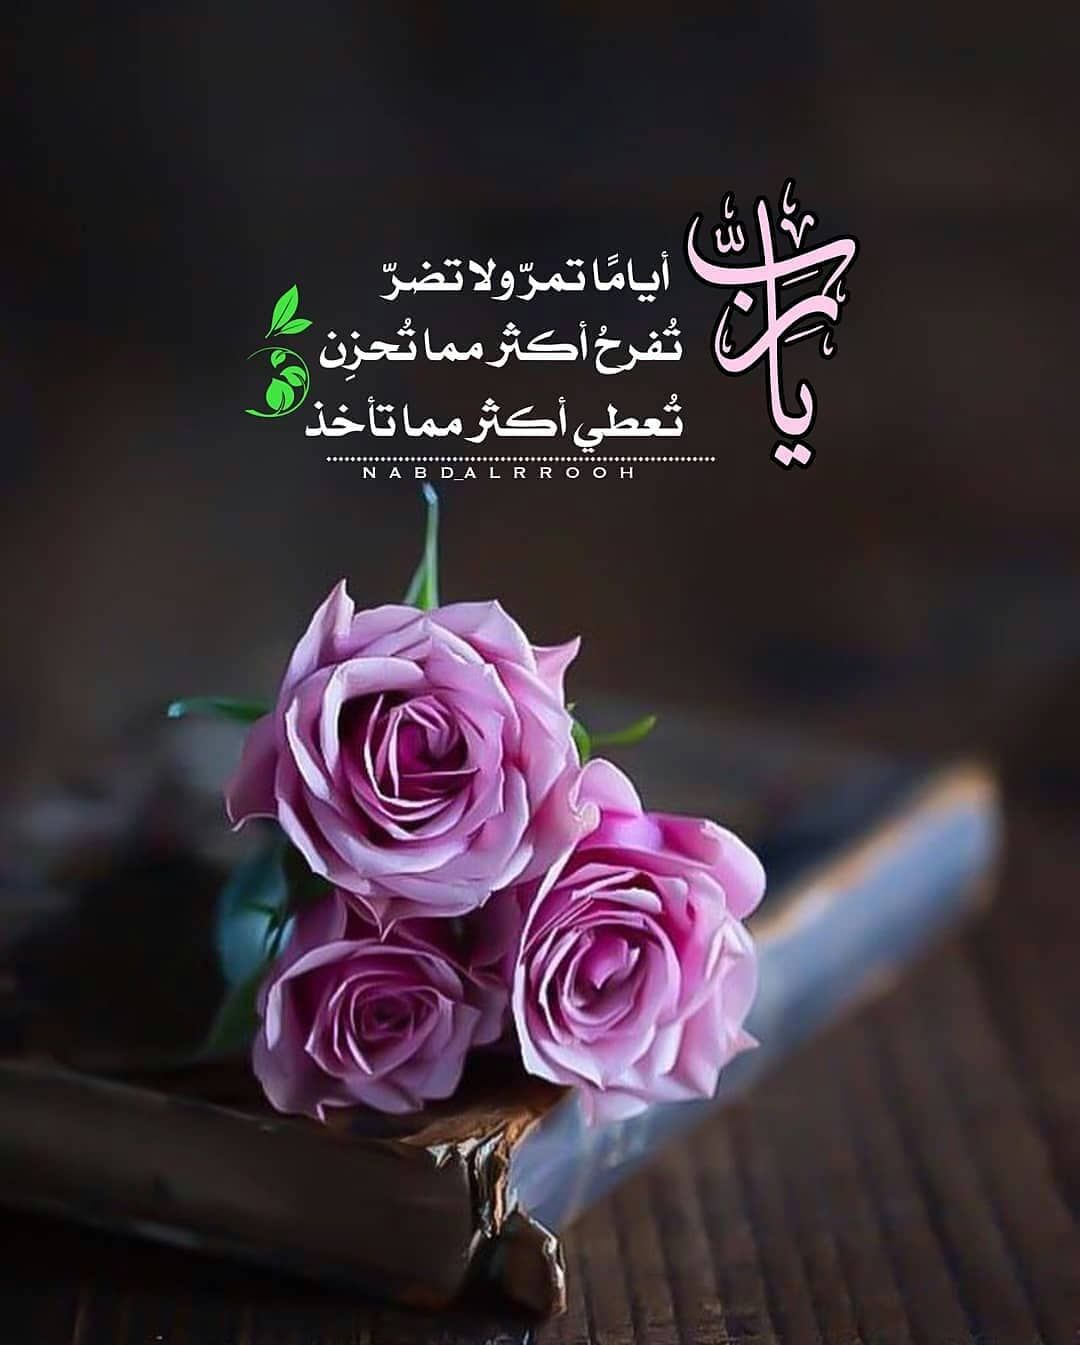 Image May Contain Flower And Text Quran Quotes Islamic Quotes Cool Words